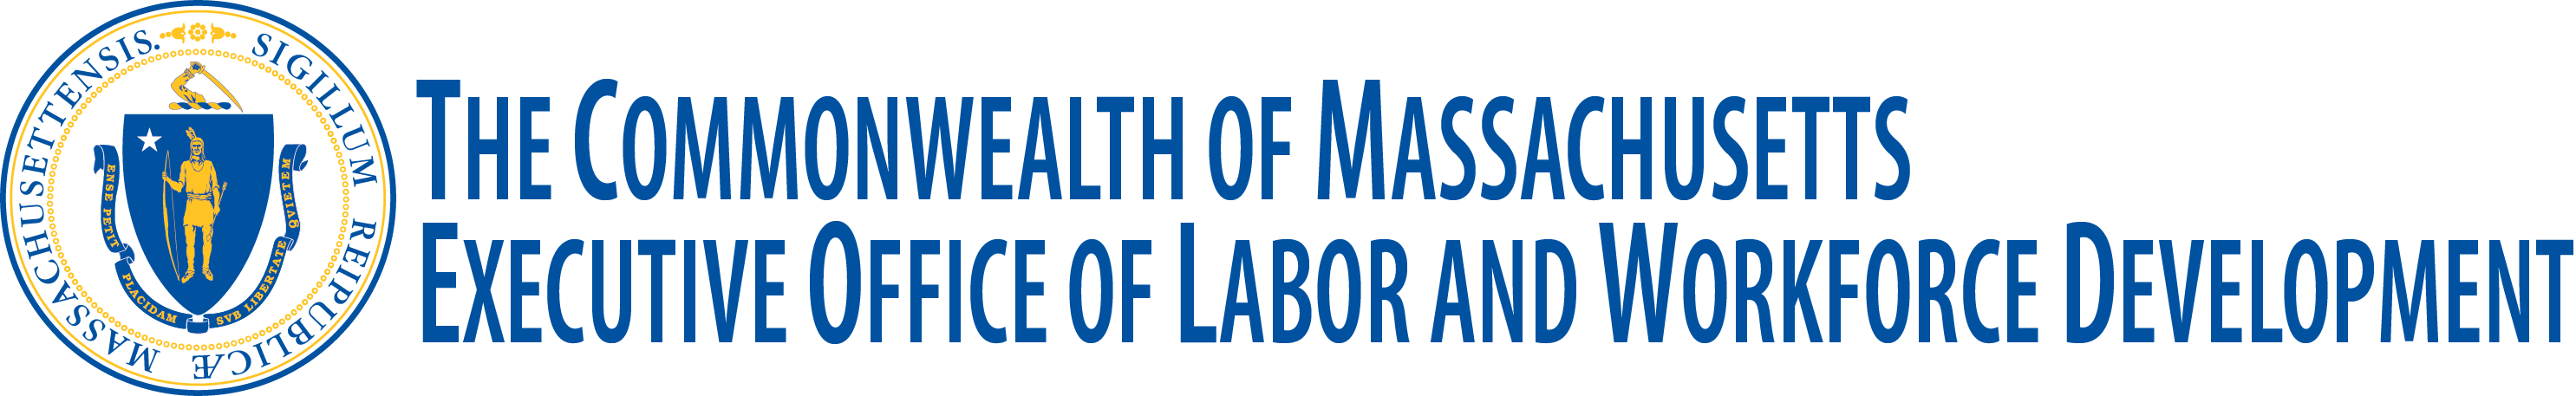 Executive Office of Labor and Workforce Development